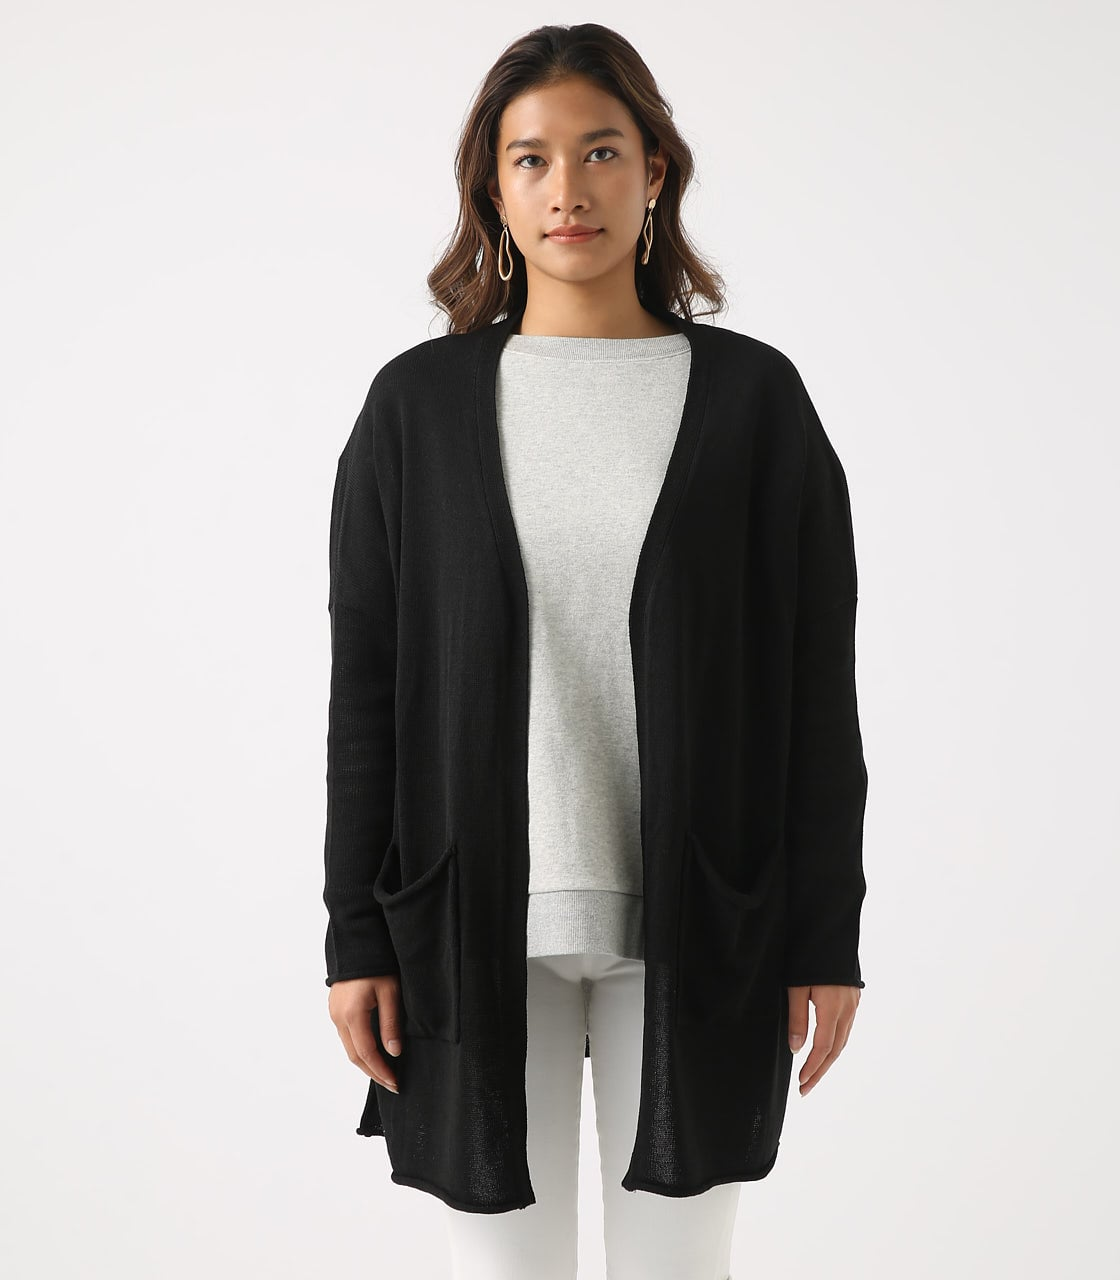 SHEER KNIT CARDIGAN 詳細画像 BLK 5